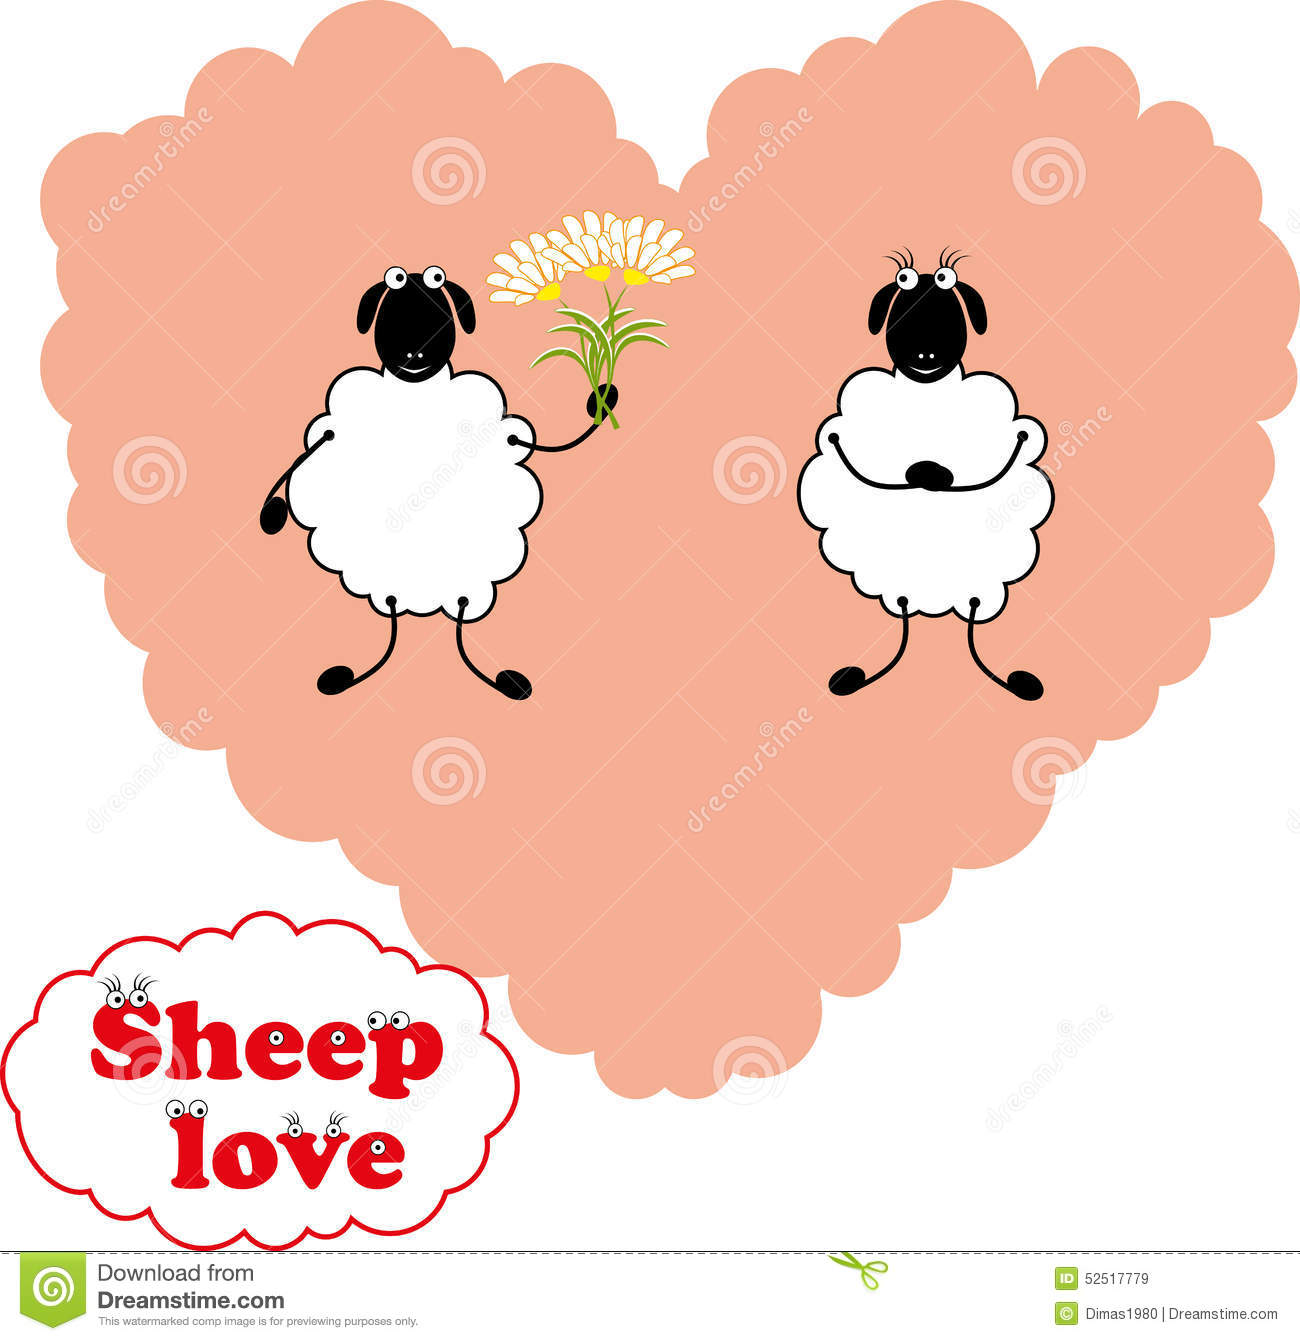 Remembrance Day Pearl Harbor >> Sheep Love Stock Vector - Image: 52517779